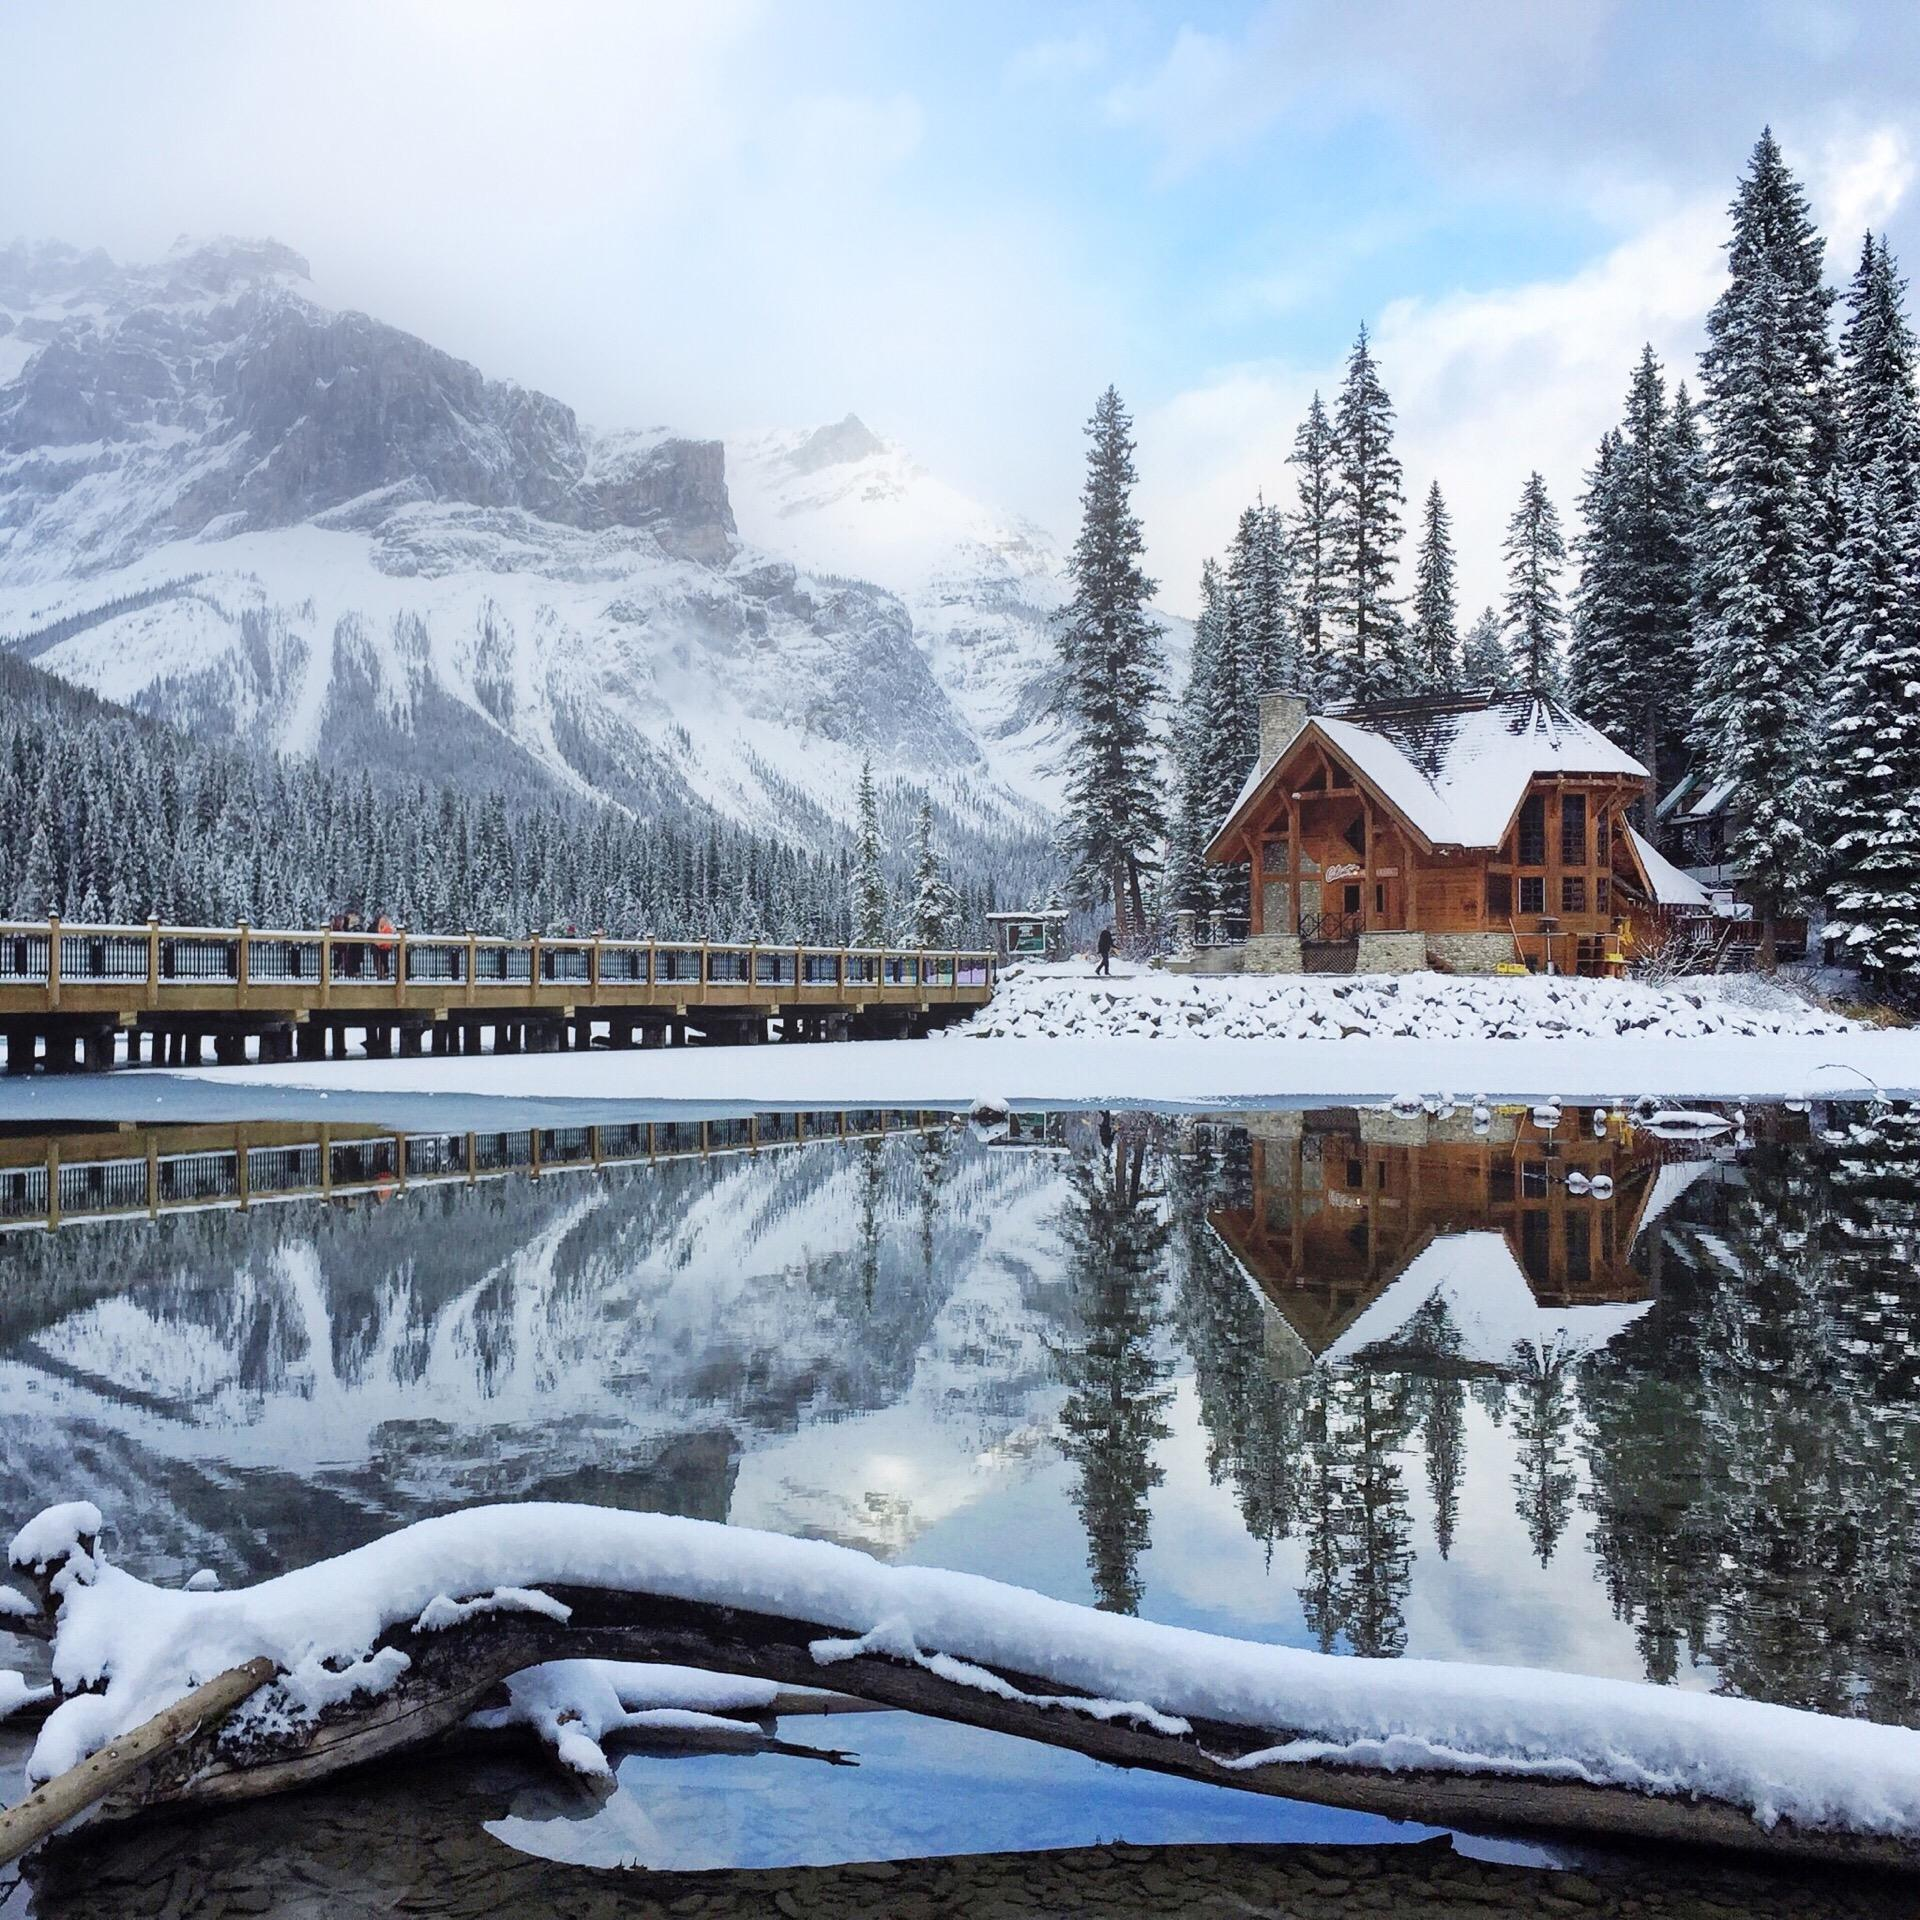 Emerald Lake Perspectives - image 2 - student project